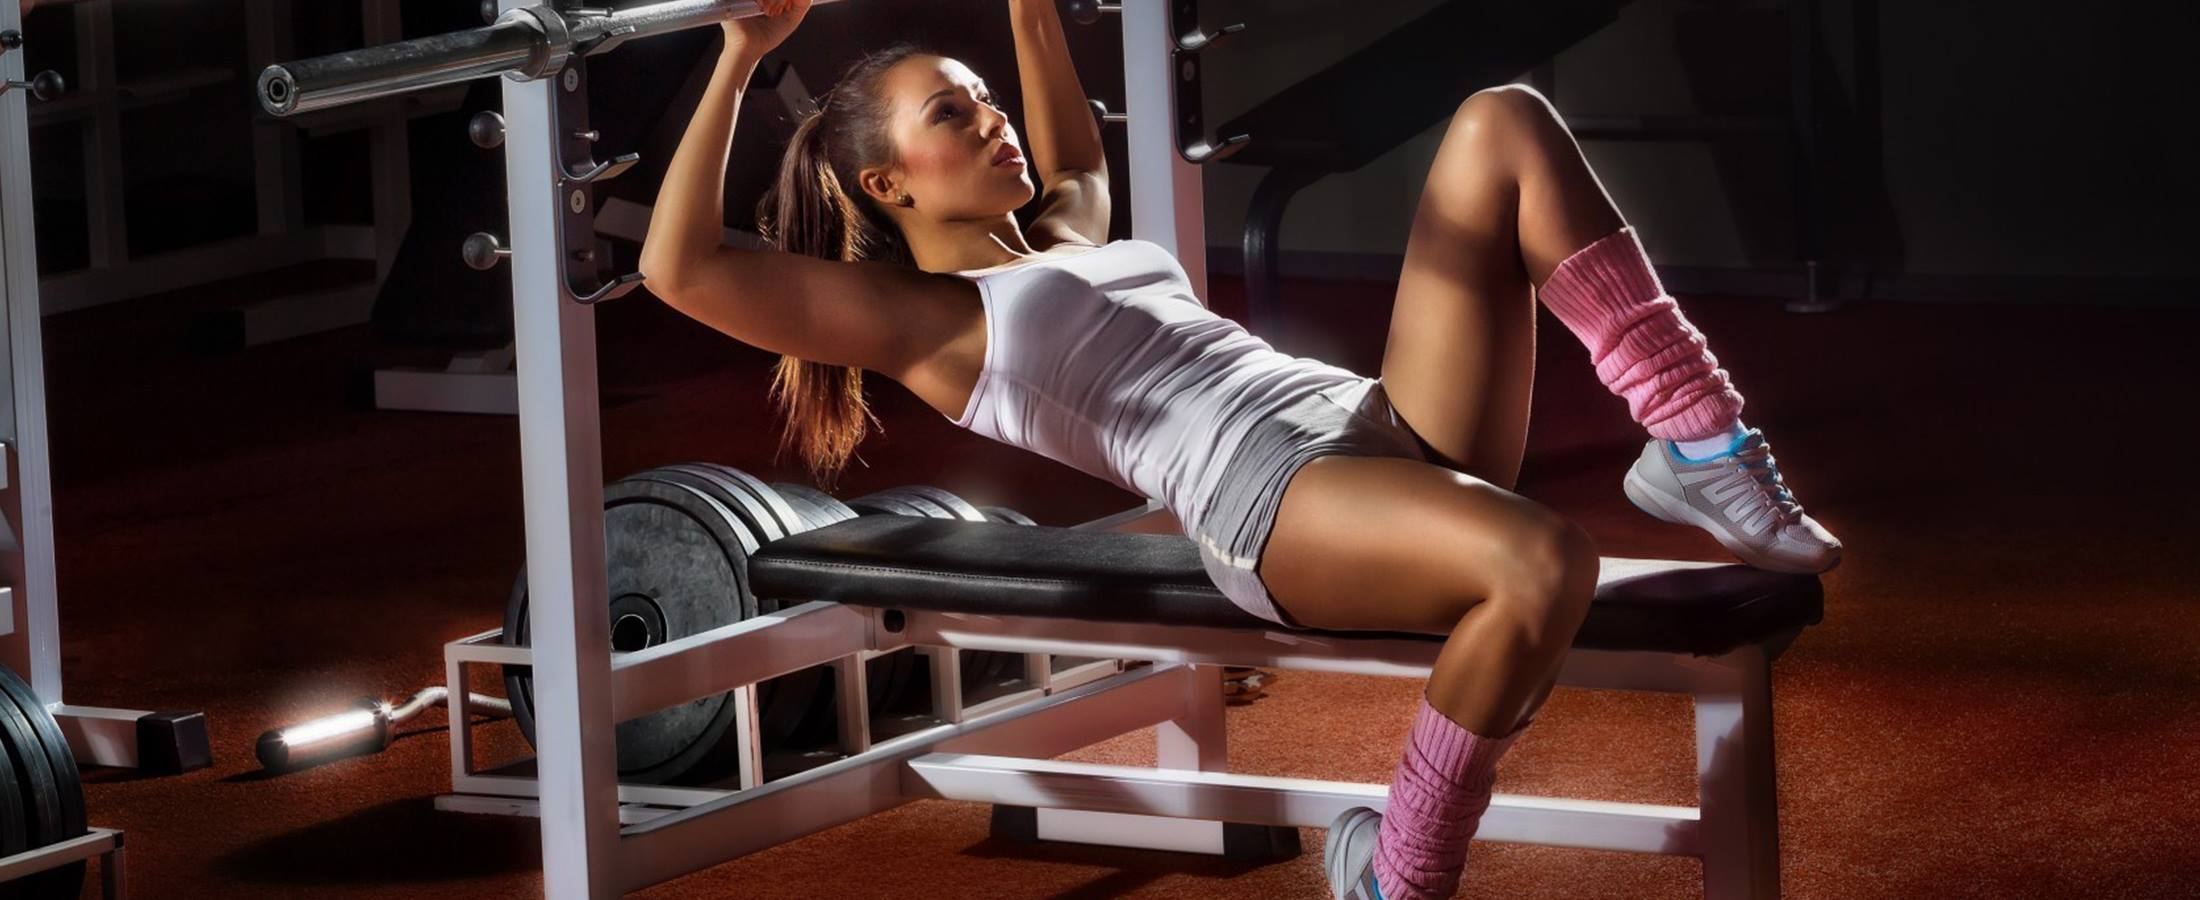 GIRL-WORKING-OUT-AT-THE-GYM